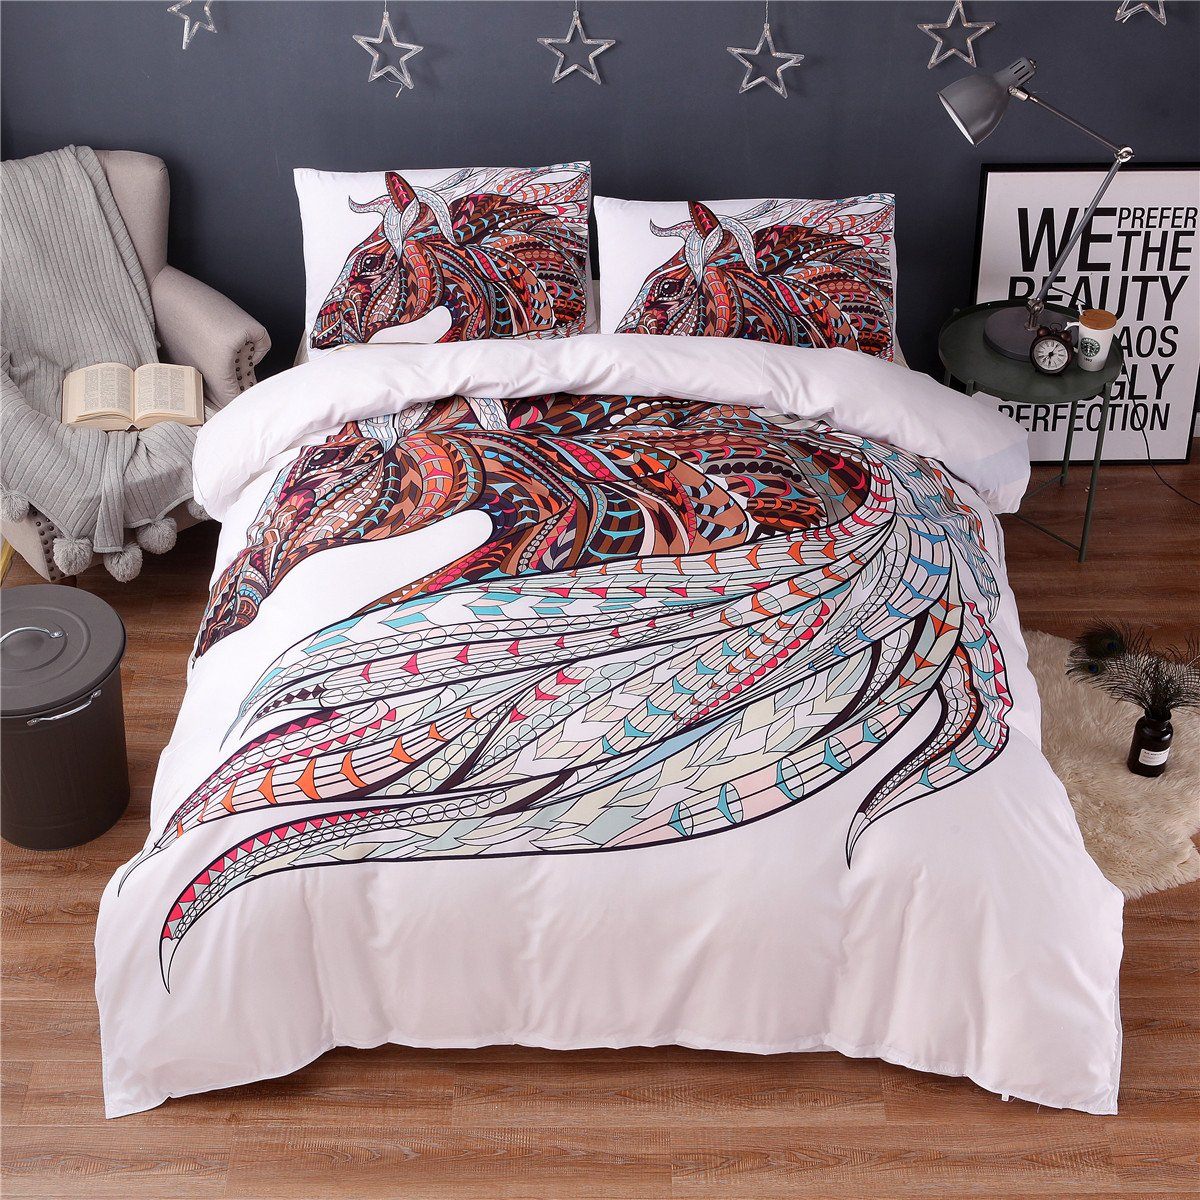 NTBED White Duvet Cover Set Queen Size,Horse Printed Brushed Microfiber Bedding set